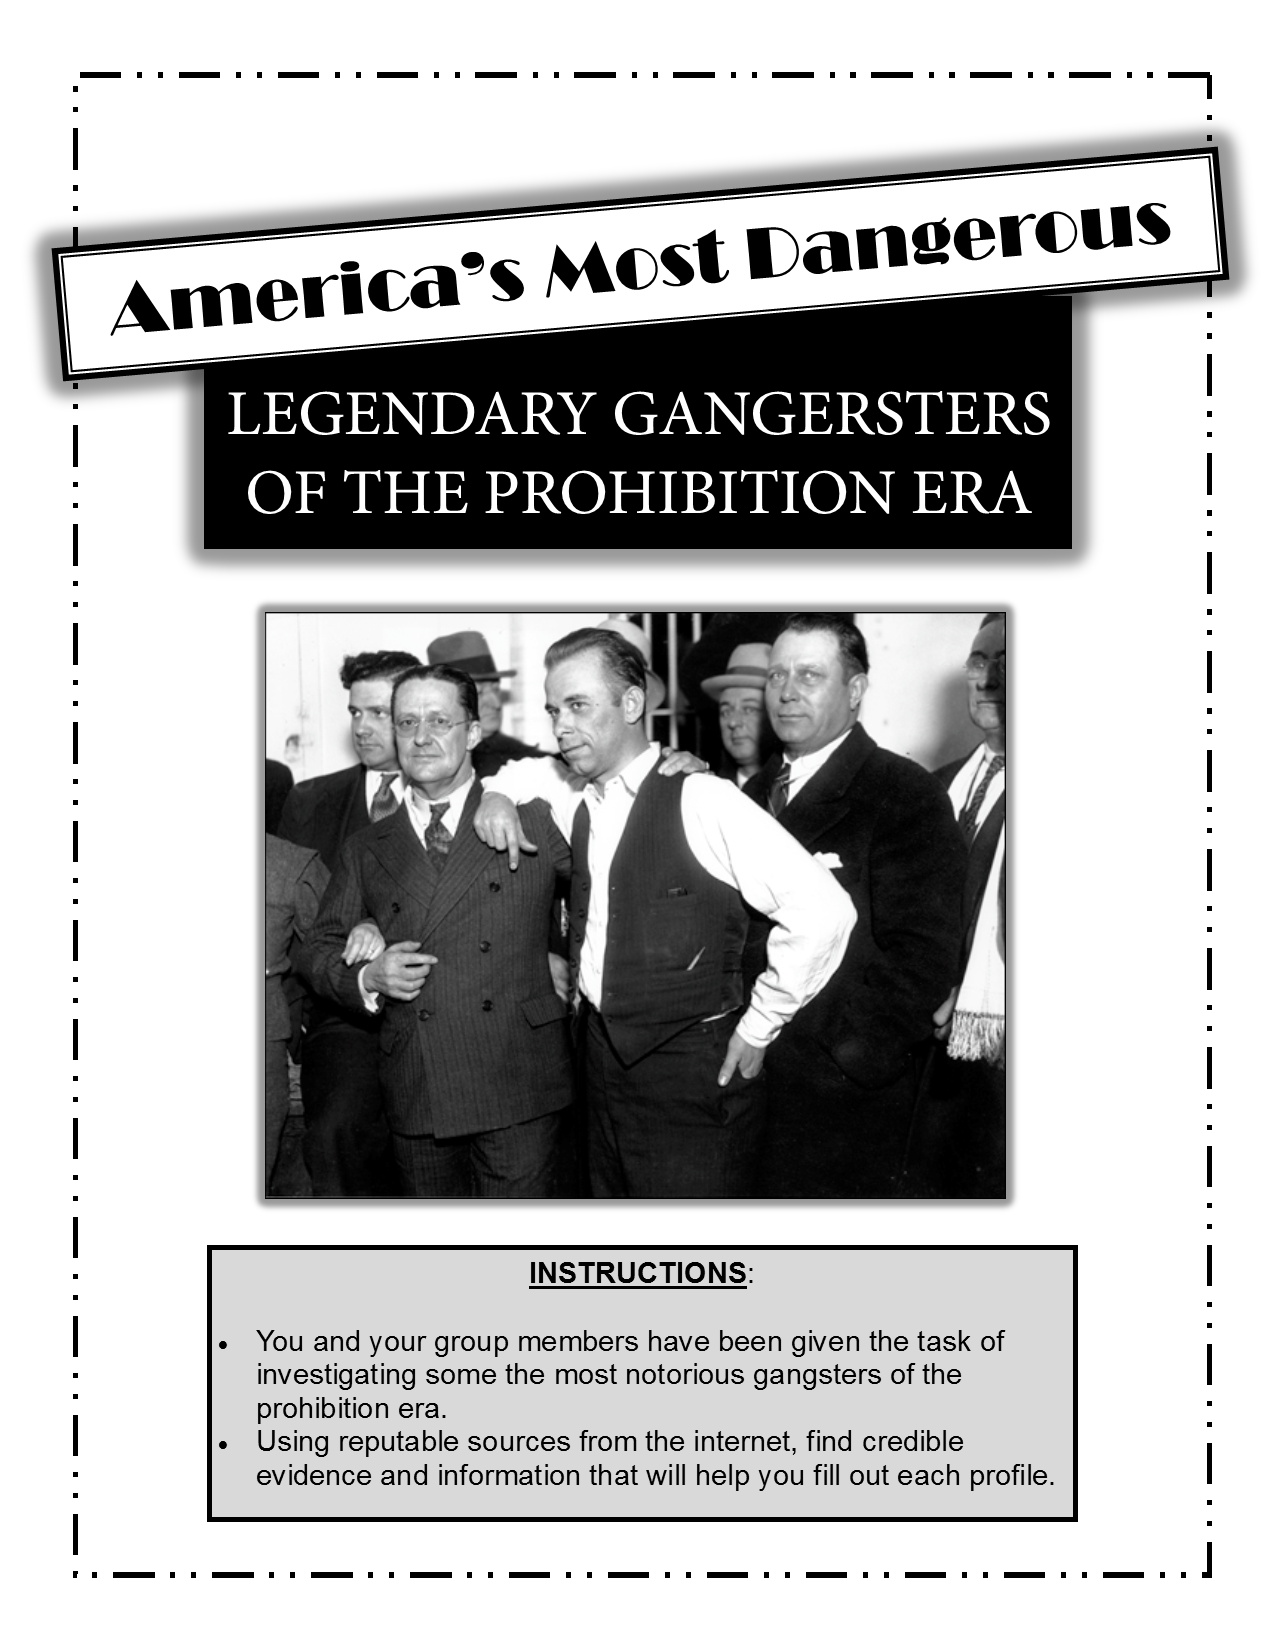 Prohibition And American Gangsters Legendary Gangsters Of The Prohibition Era